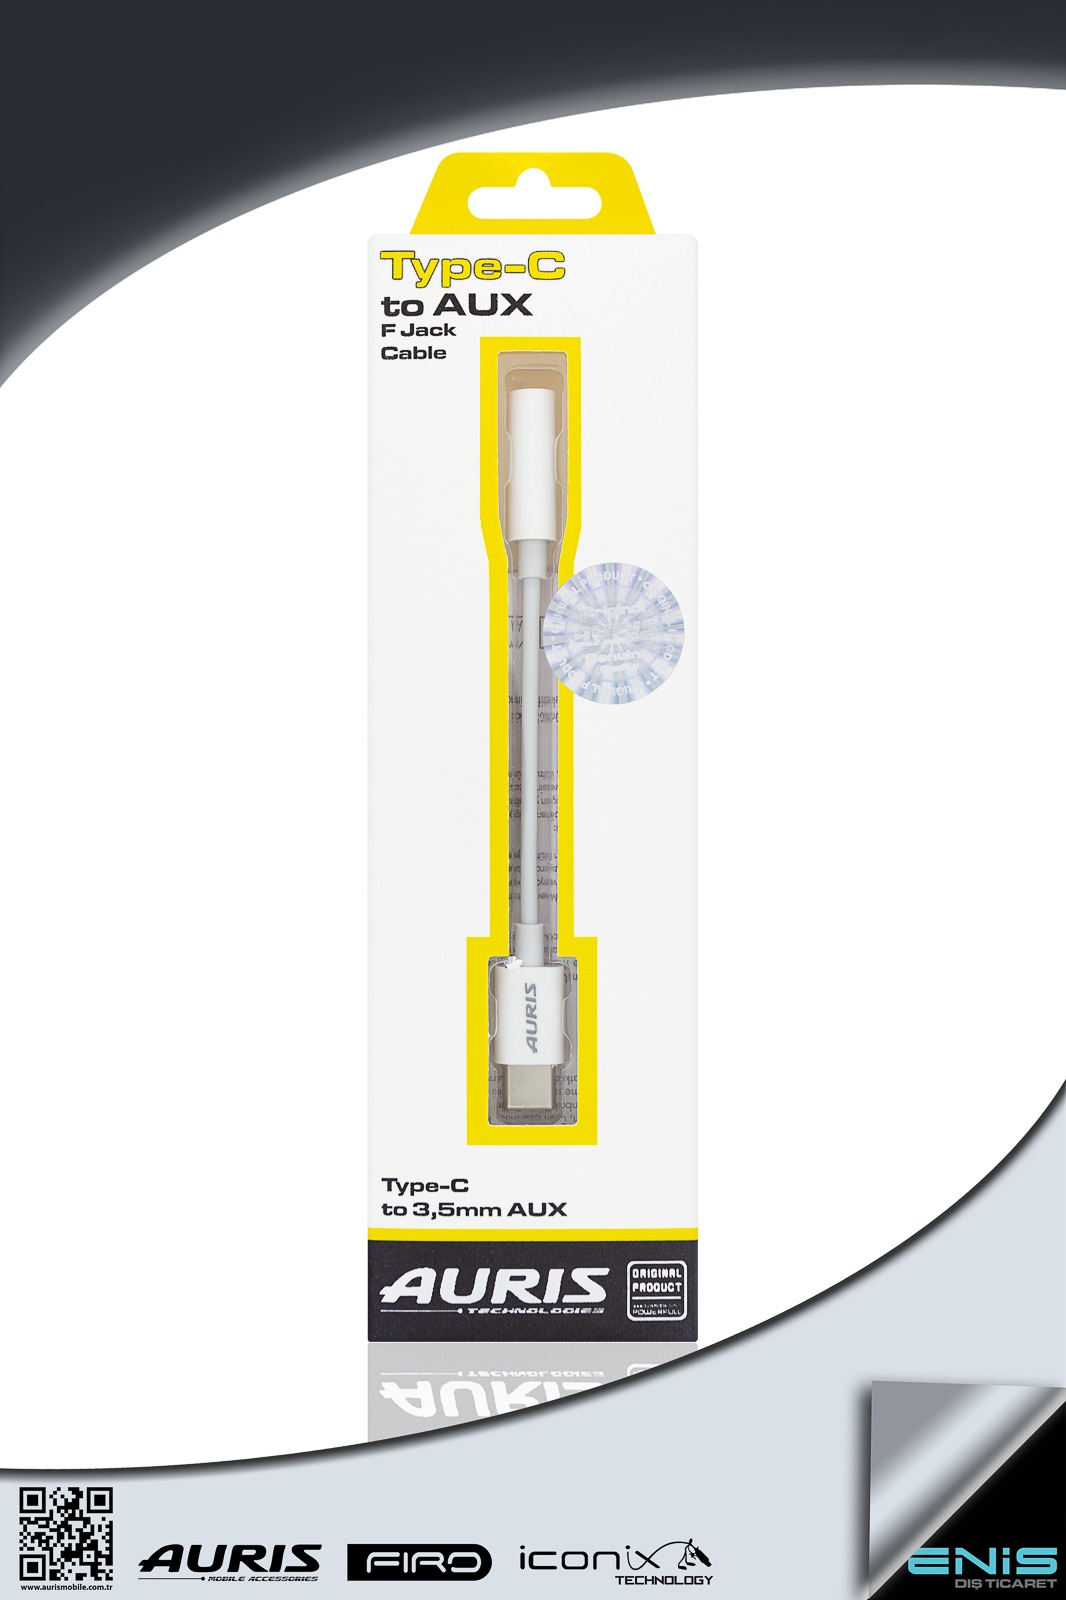 TYPE-C TO AUX F JACK CABLE